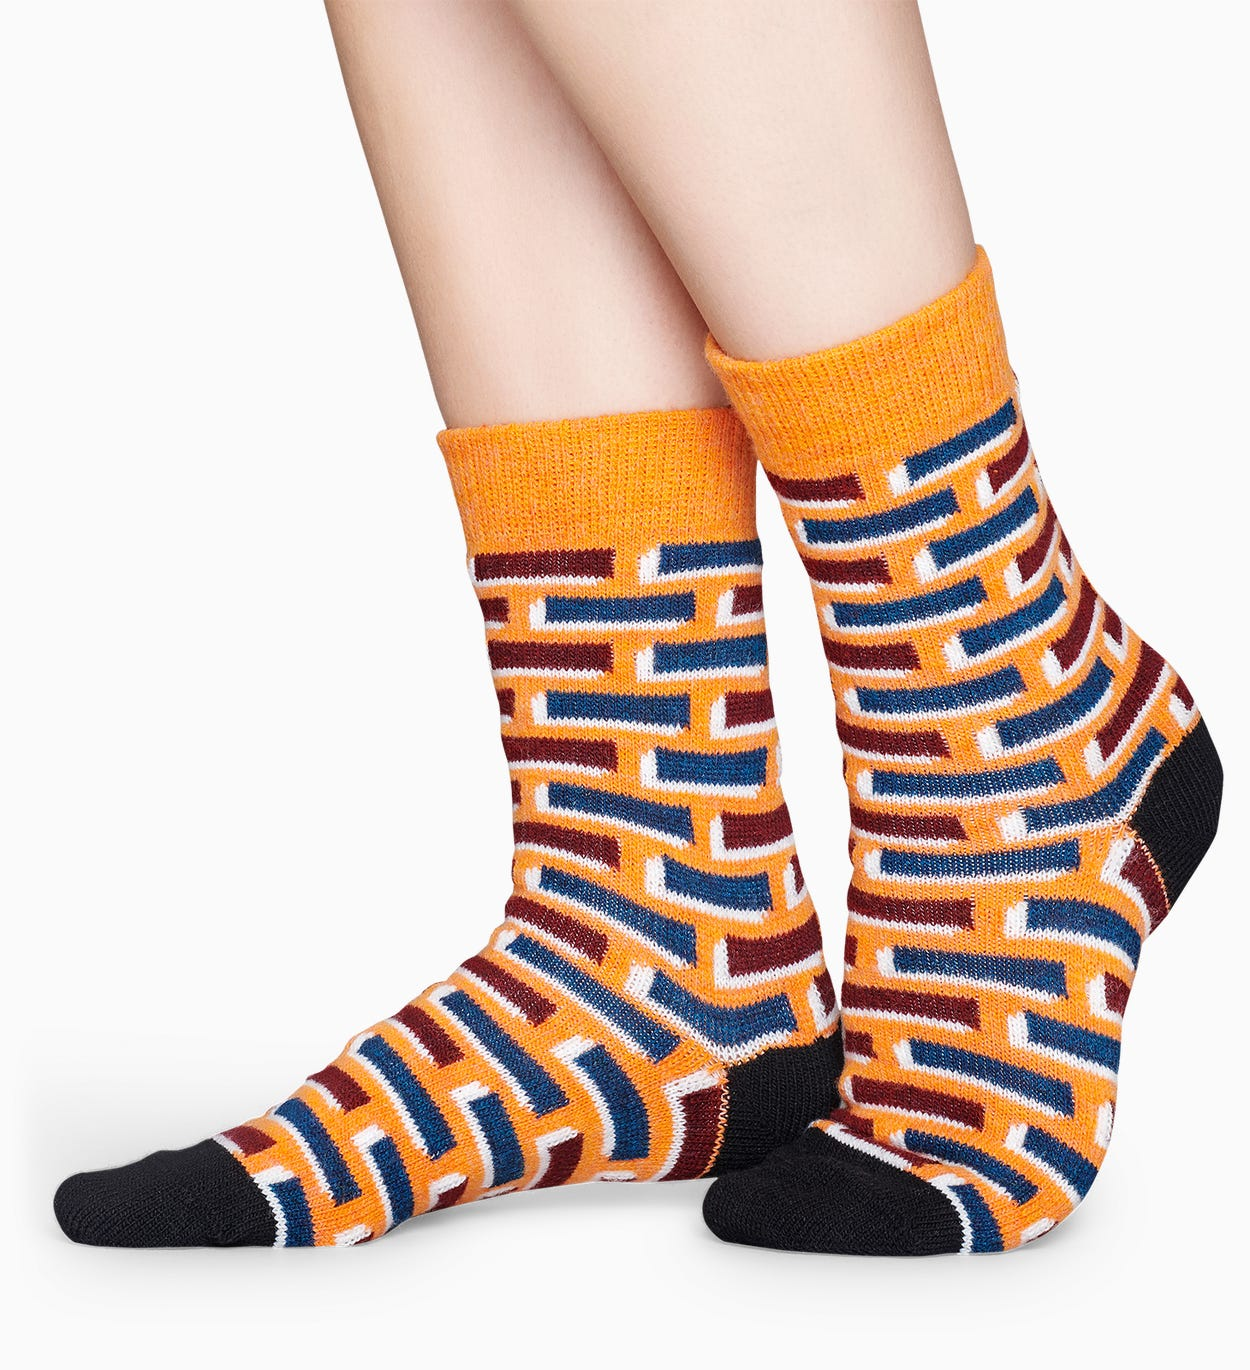 Orange Wollsocken: Ziegel | Happy Socks